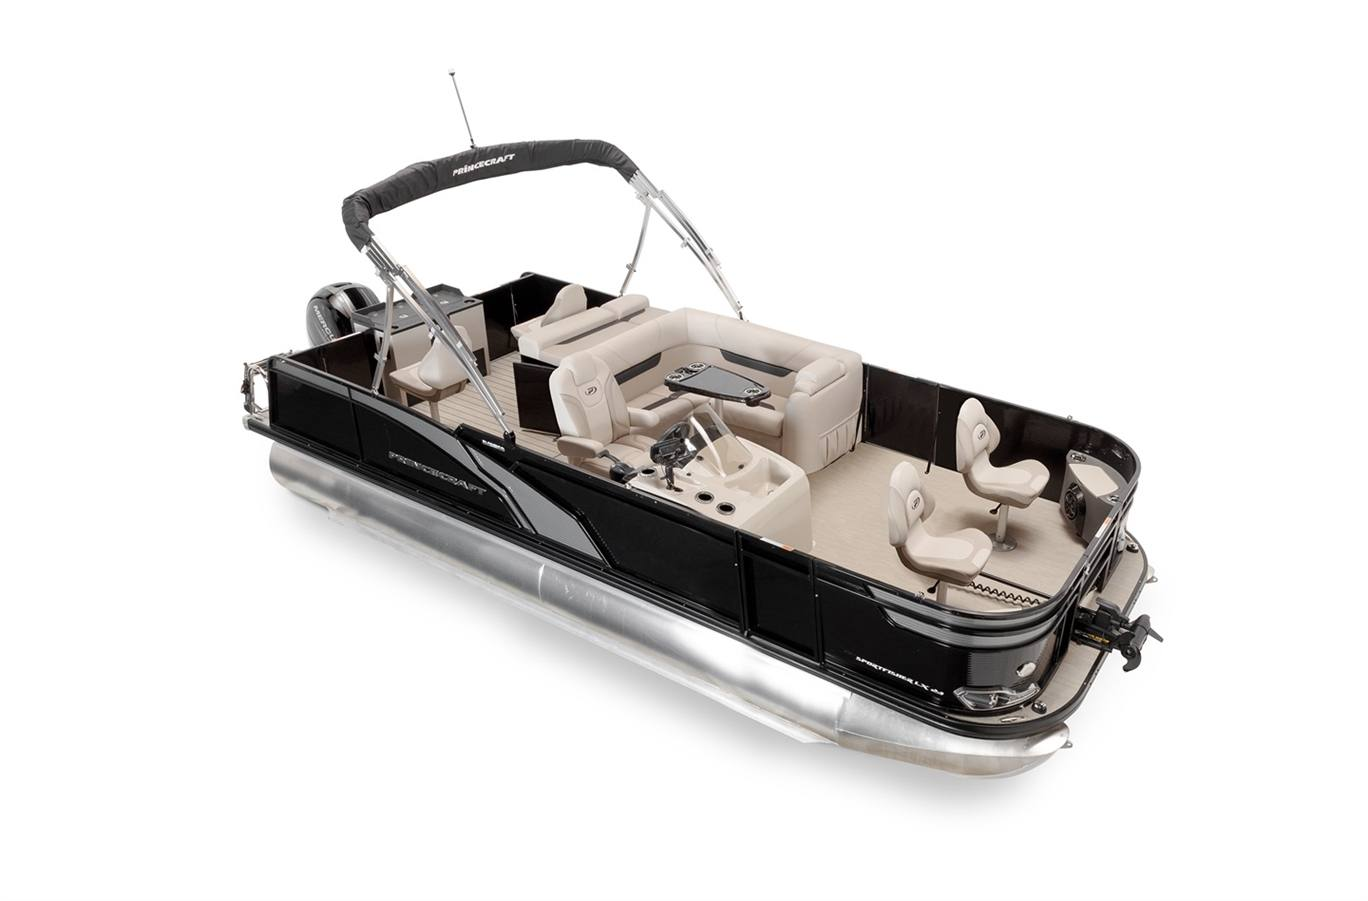 2019 Princecraft Sportfisher LX 23-4S for sale in Muncy, PA  Hall's